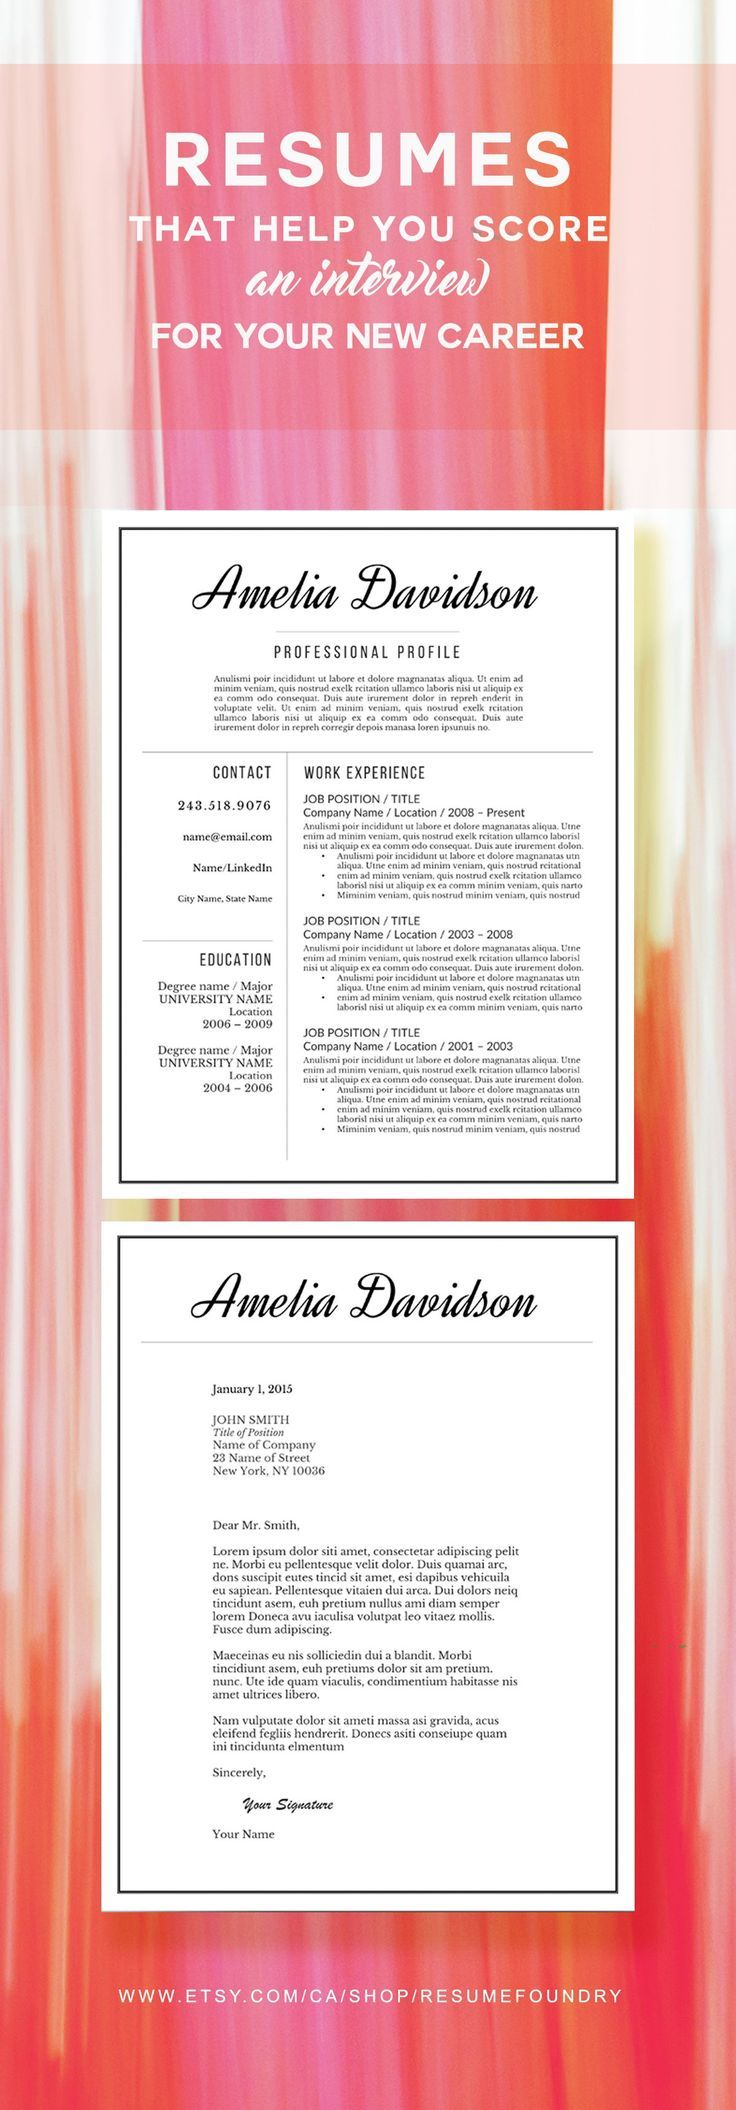 Elegant resume template, for use with Microsoft Word.